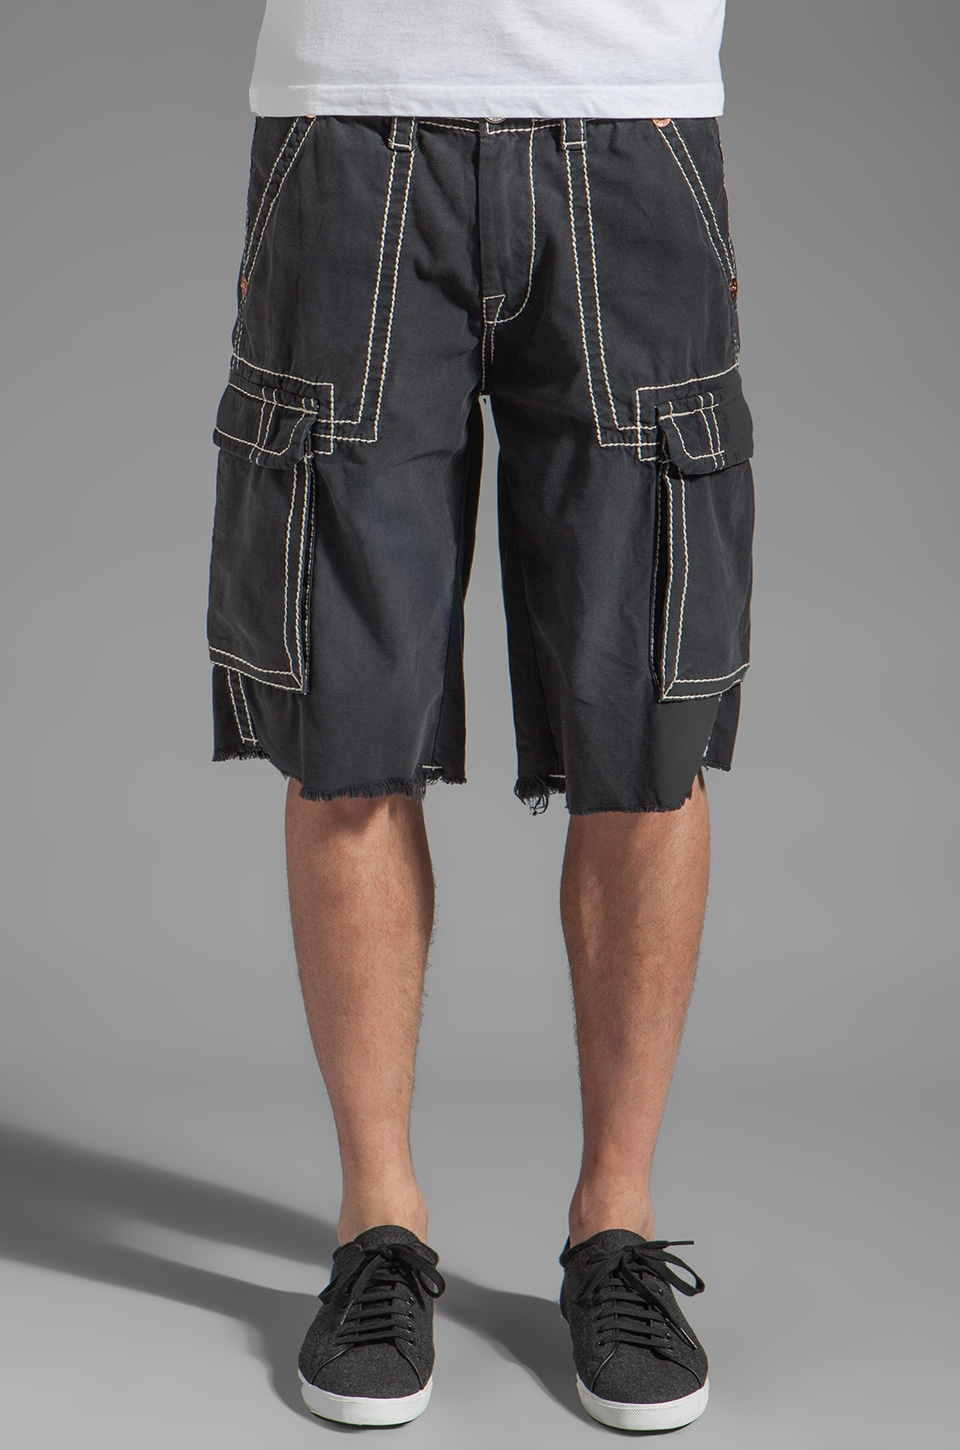 True Religion Issac Big T Cargo Shorts in Navy